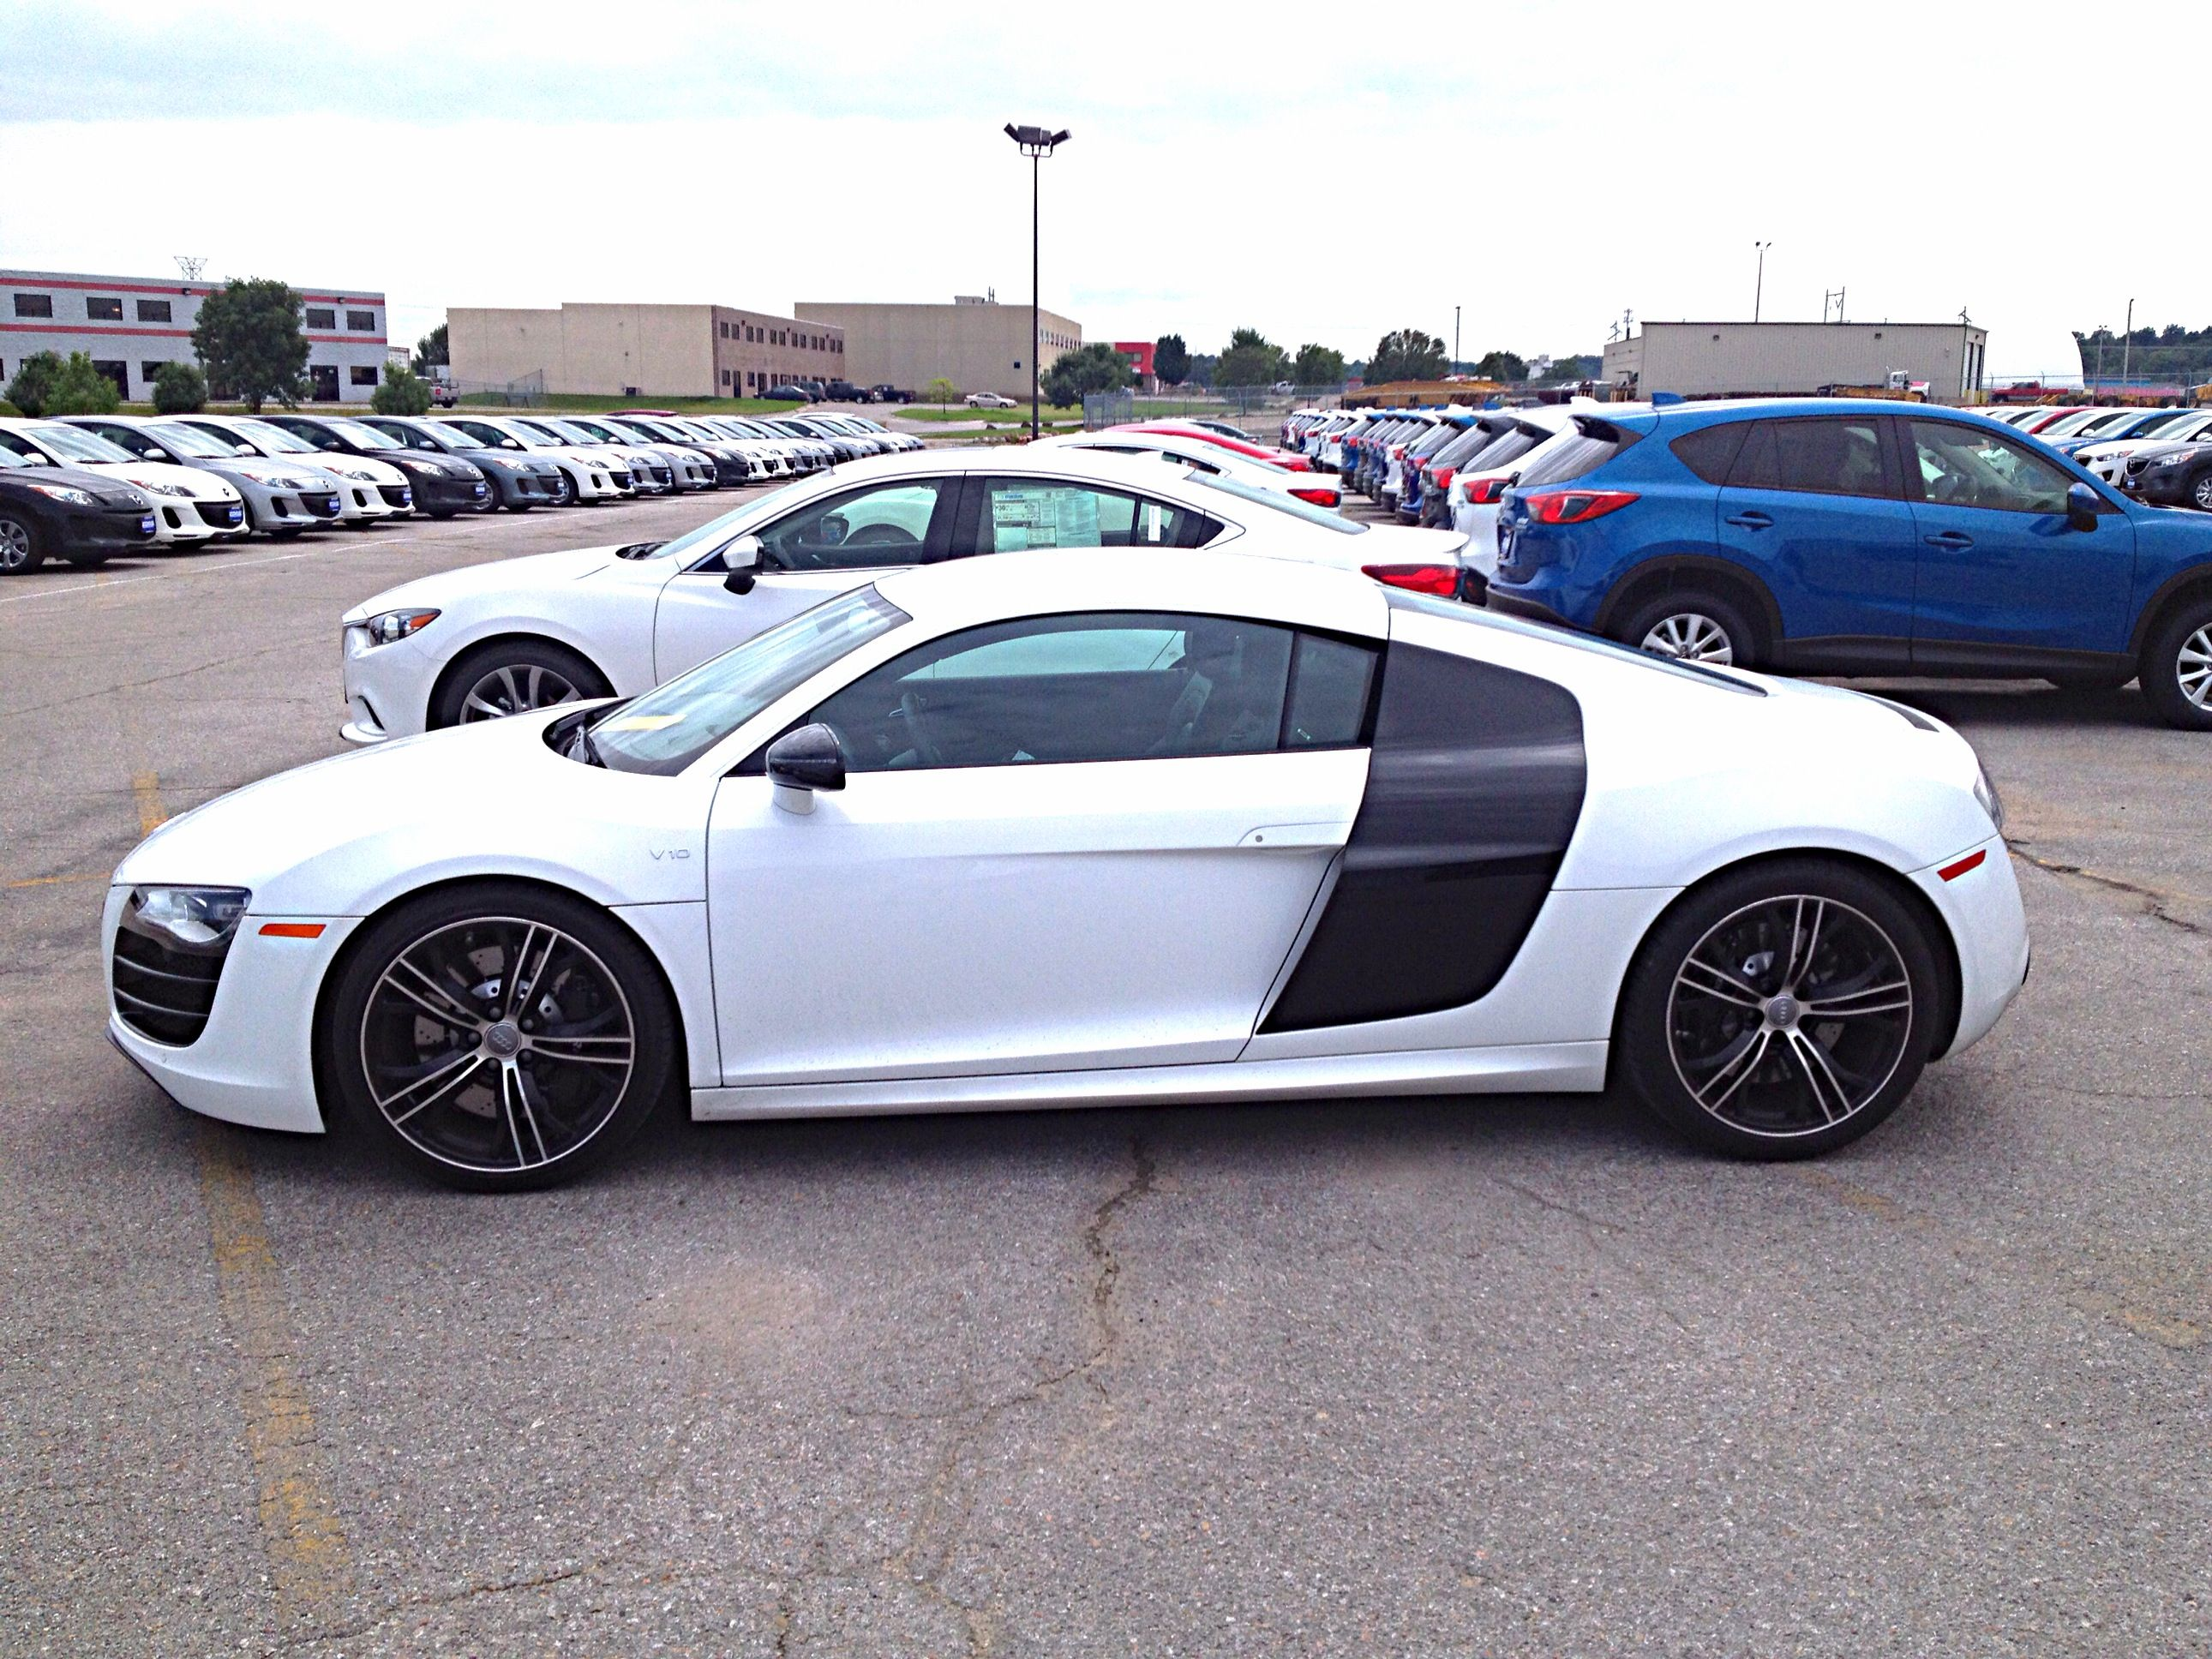 White on black Audi R8 | Cars & Motorcycles baby | Pinterest